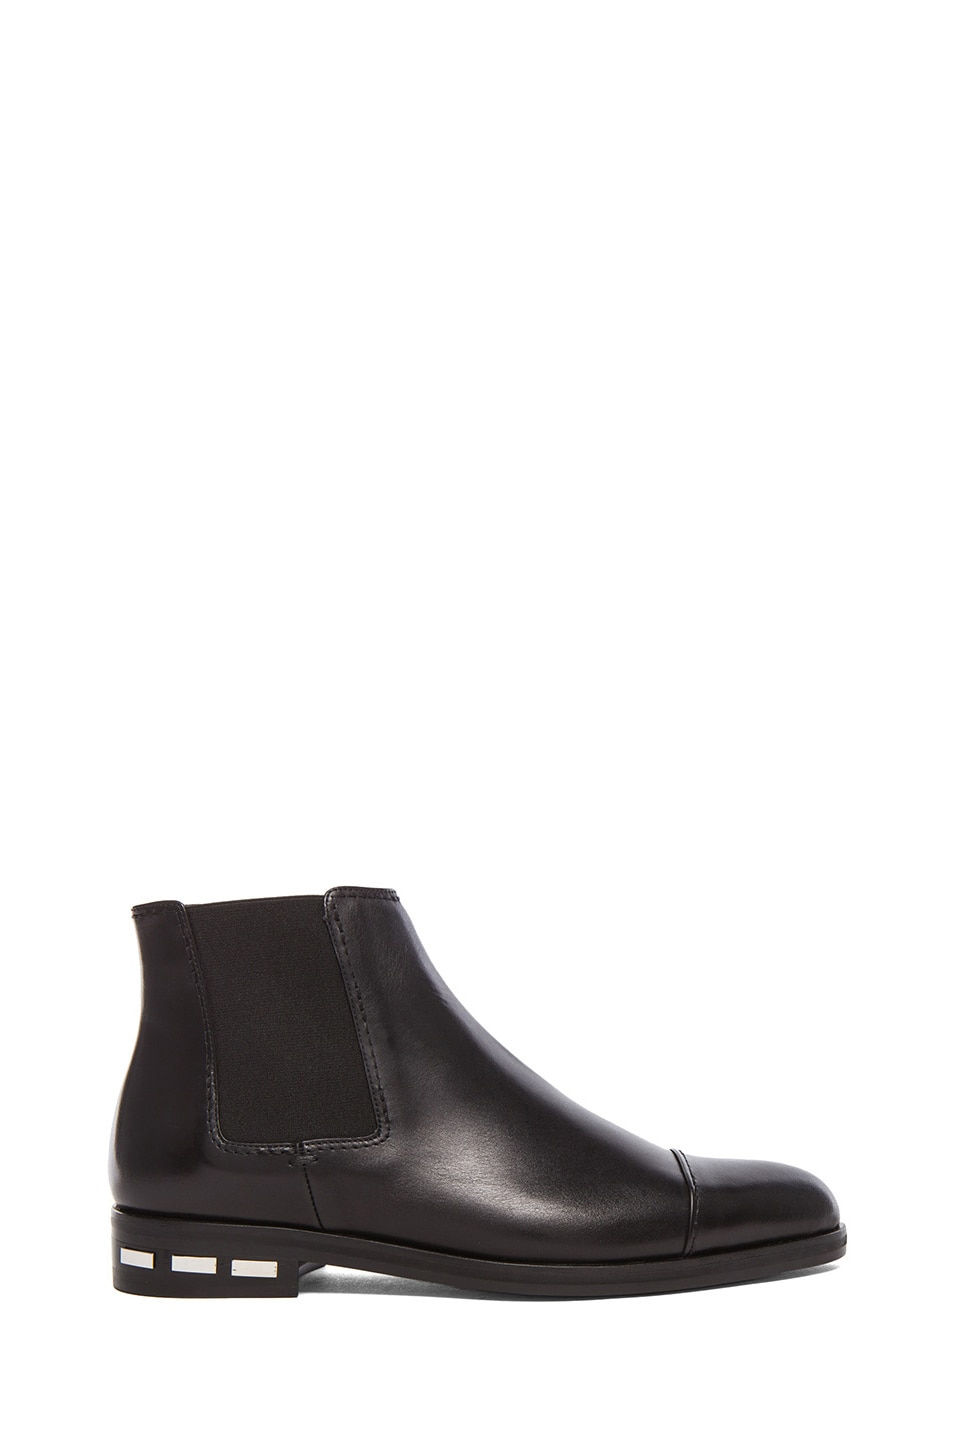 Image 1 of Lanvin Chelsea Leather Boots in Black